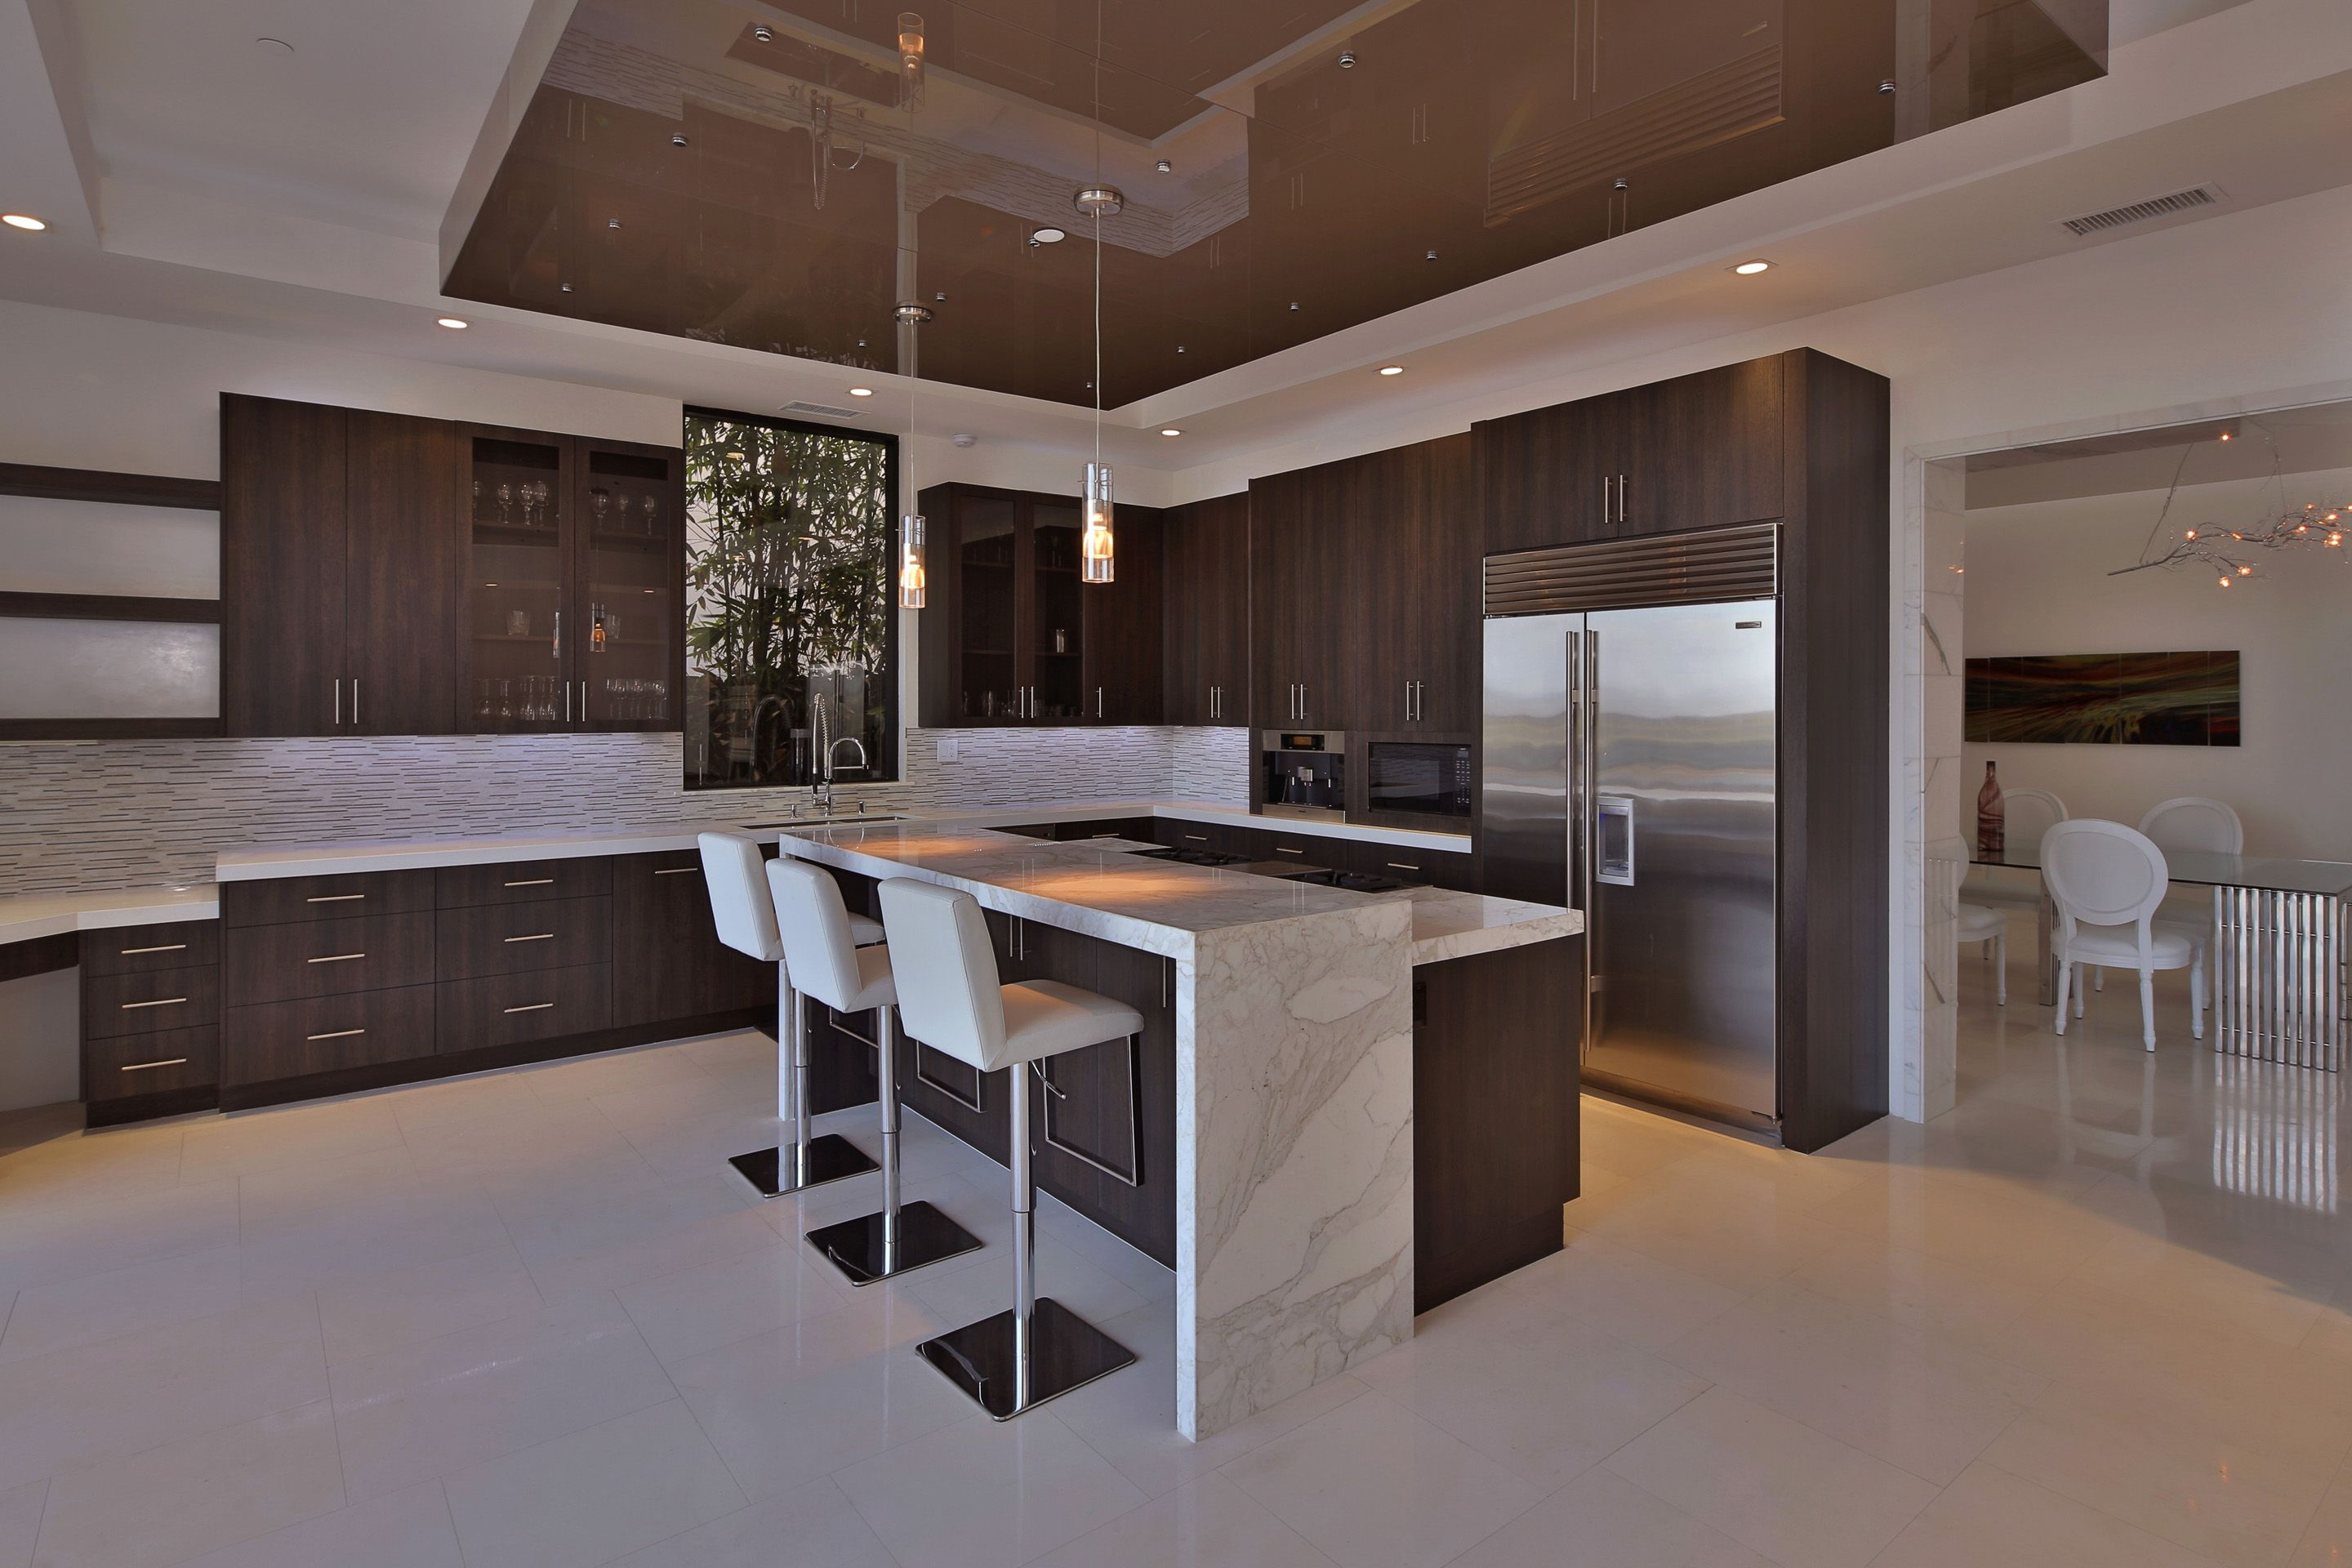 Luxury Modern Kitchen Luxury Real Estate Marketing Luxury